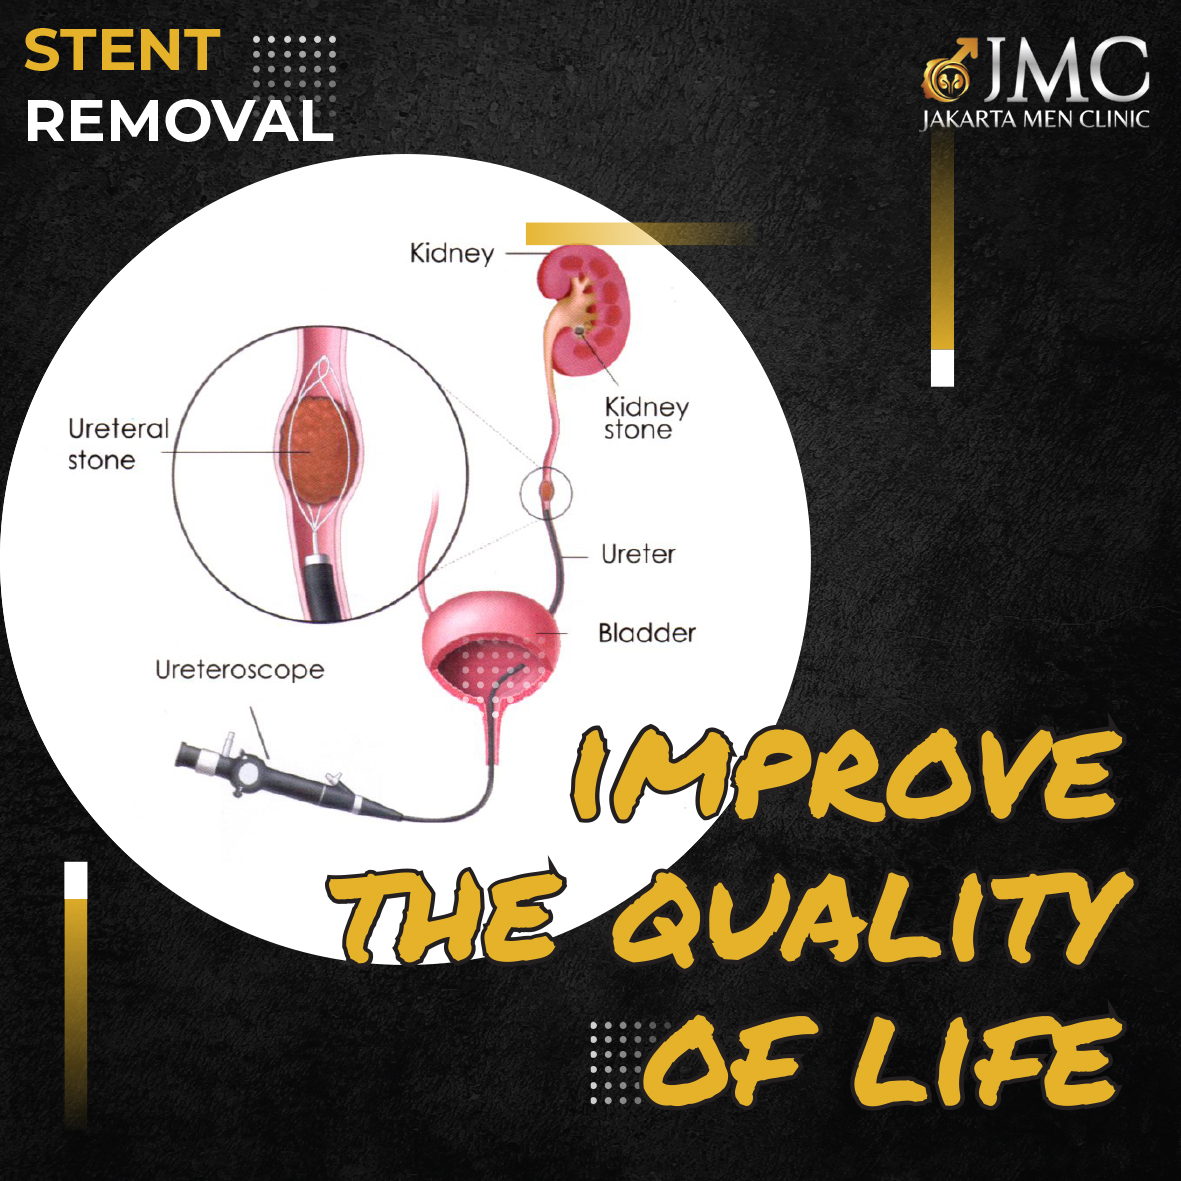 STENT REMOVAL